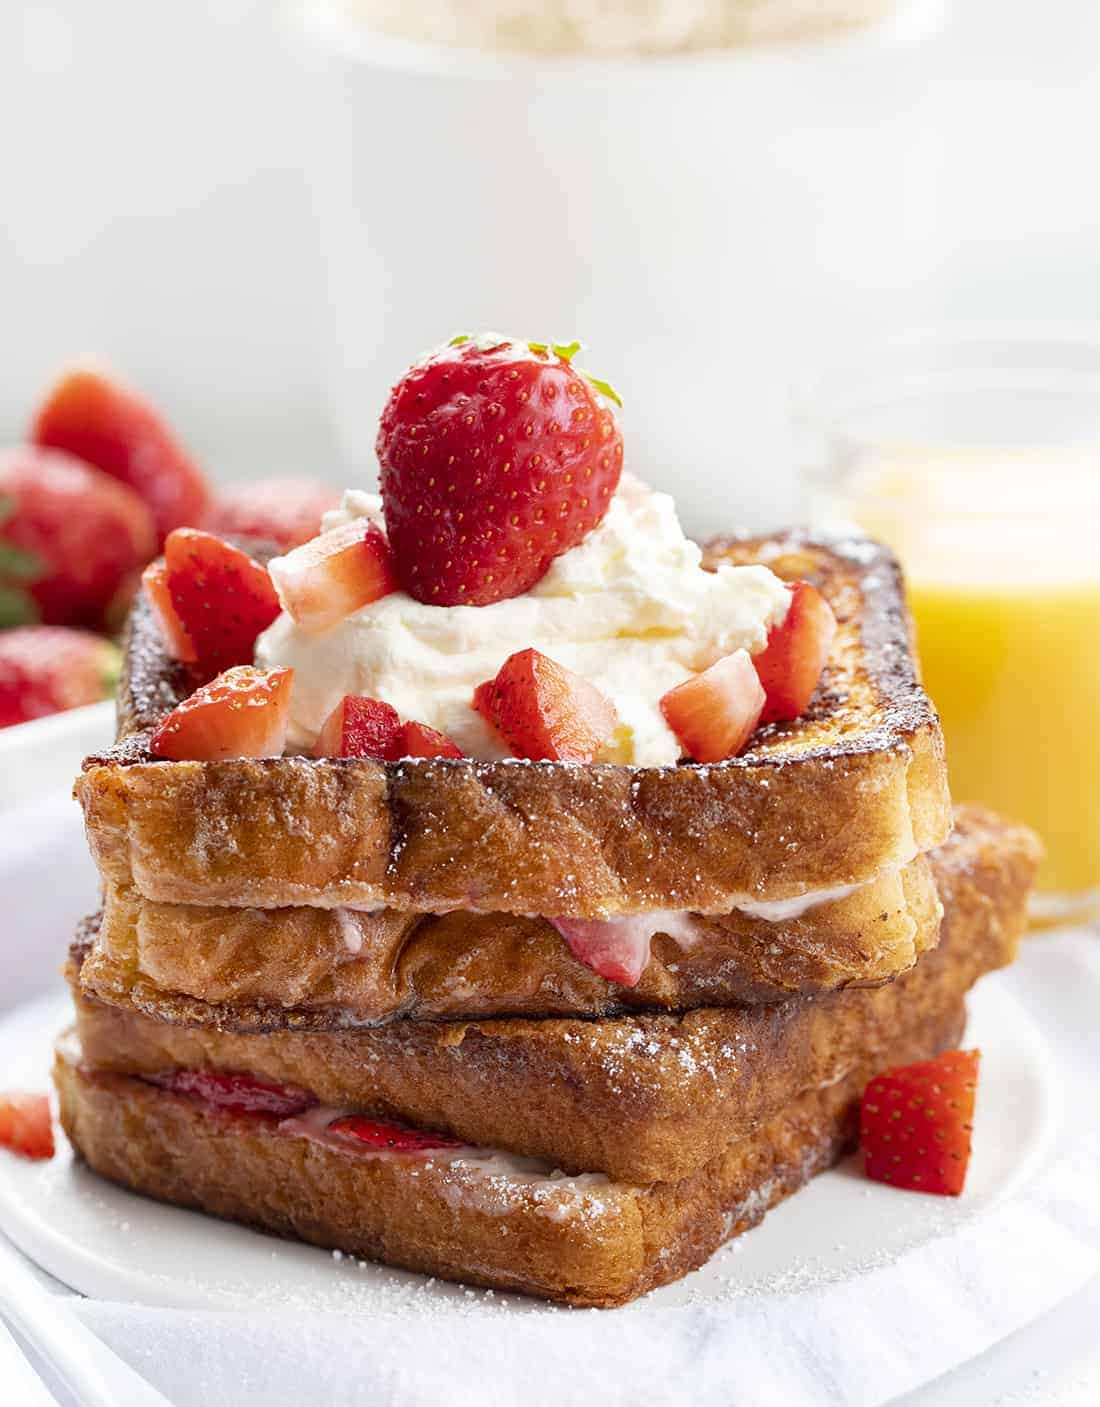 Strawberry Stuffed French Toast on a Plate